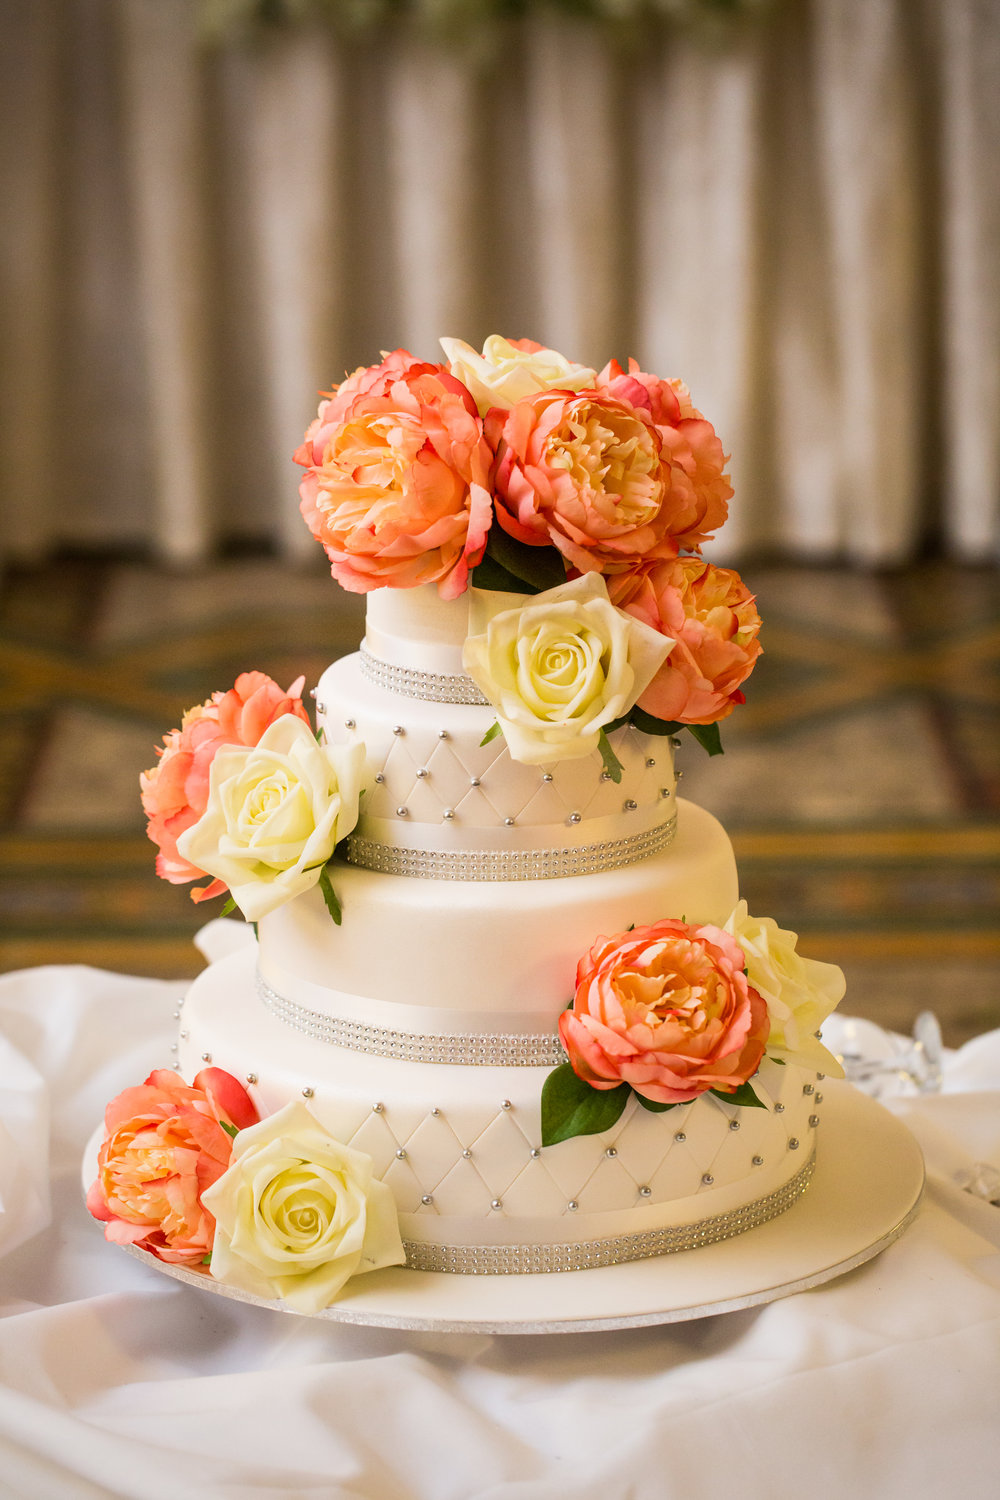 Peach and White Wedding Cake - A Curzon Hall Wedding - T-One Photography